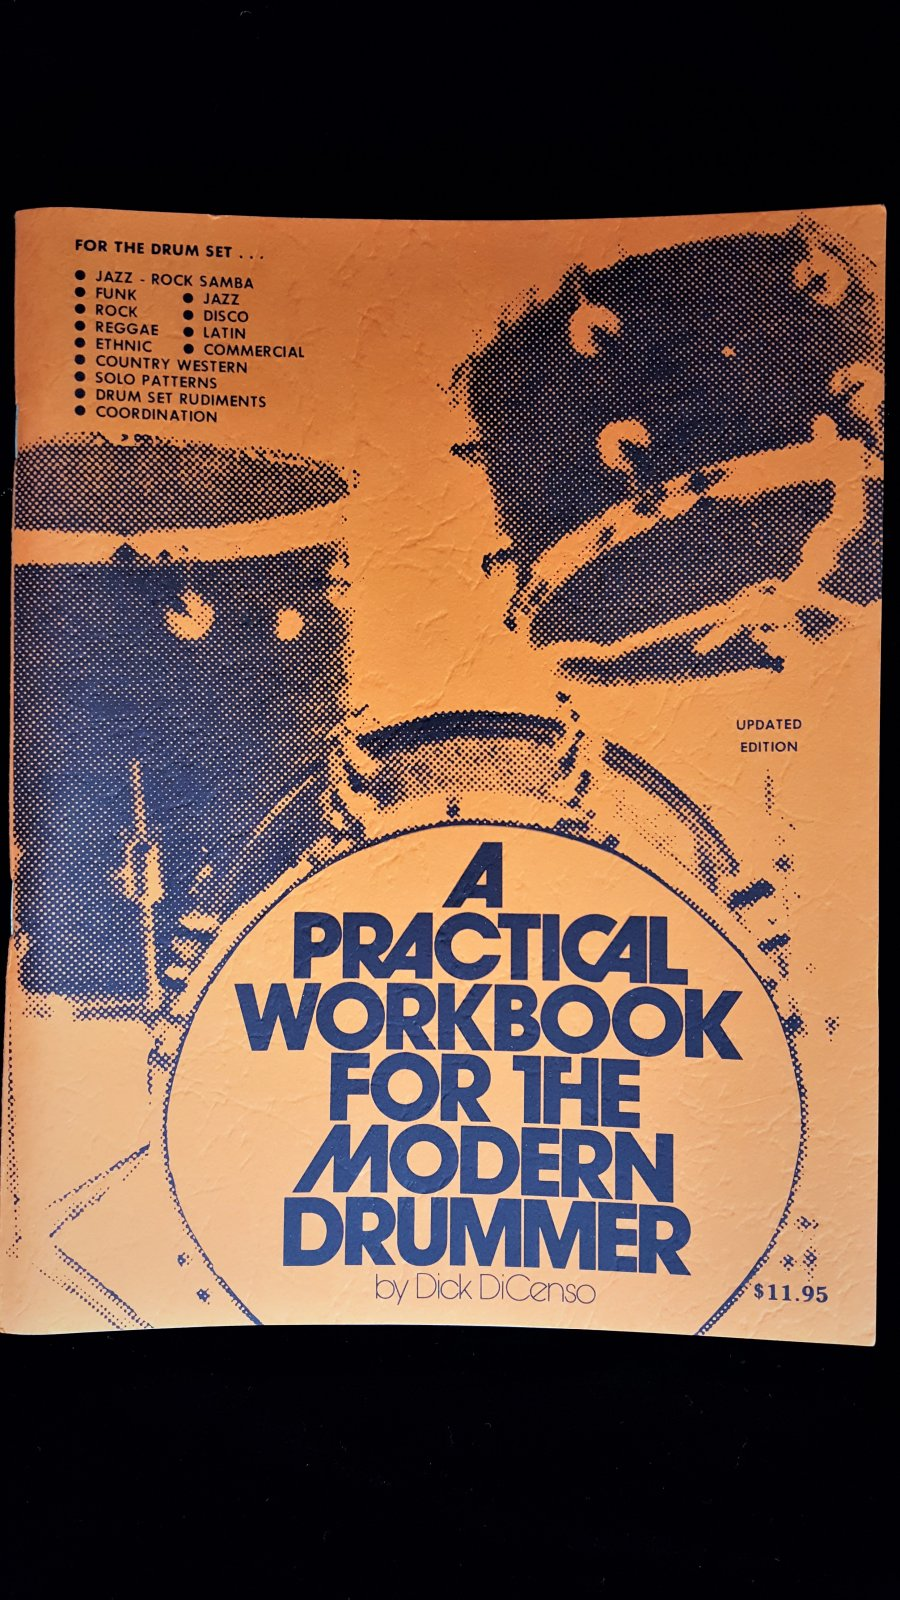 A Practical Workbook For the Modern Drummer by Dick DiCenso